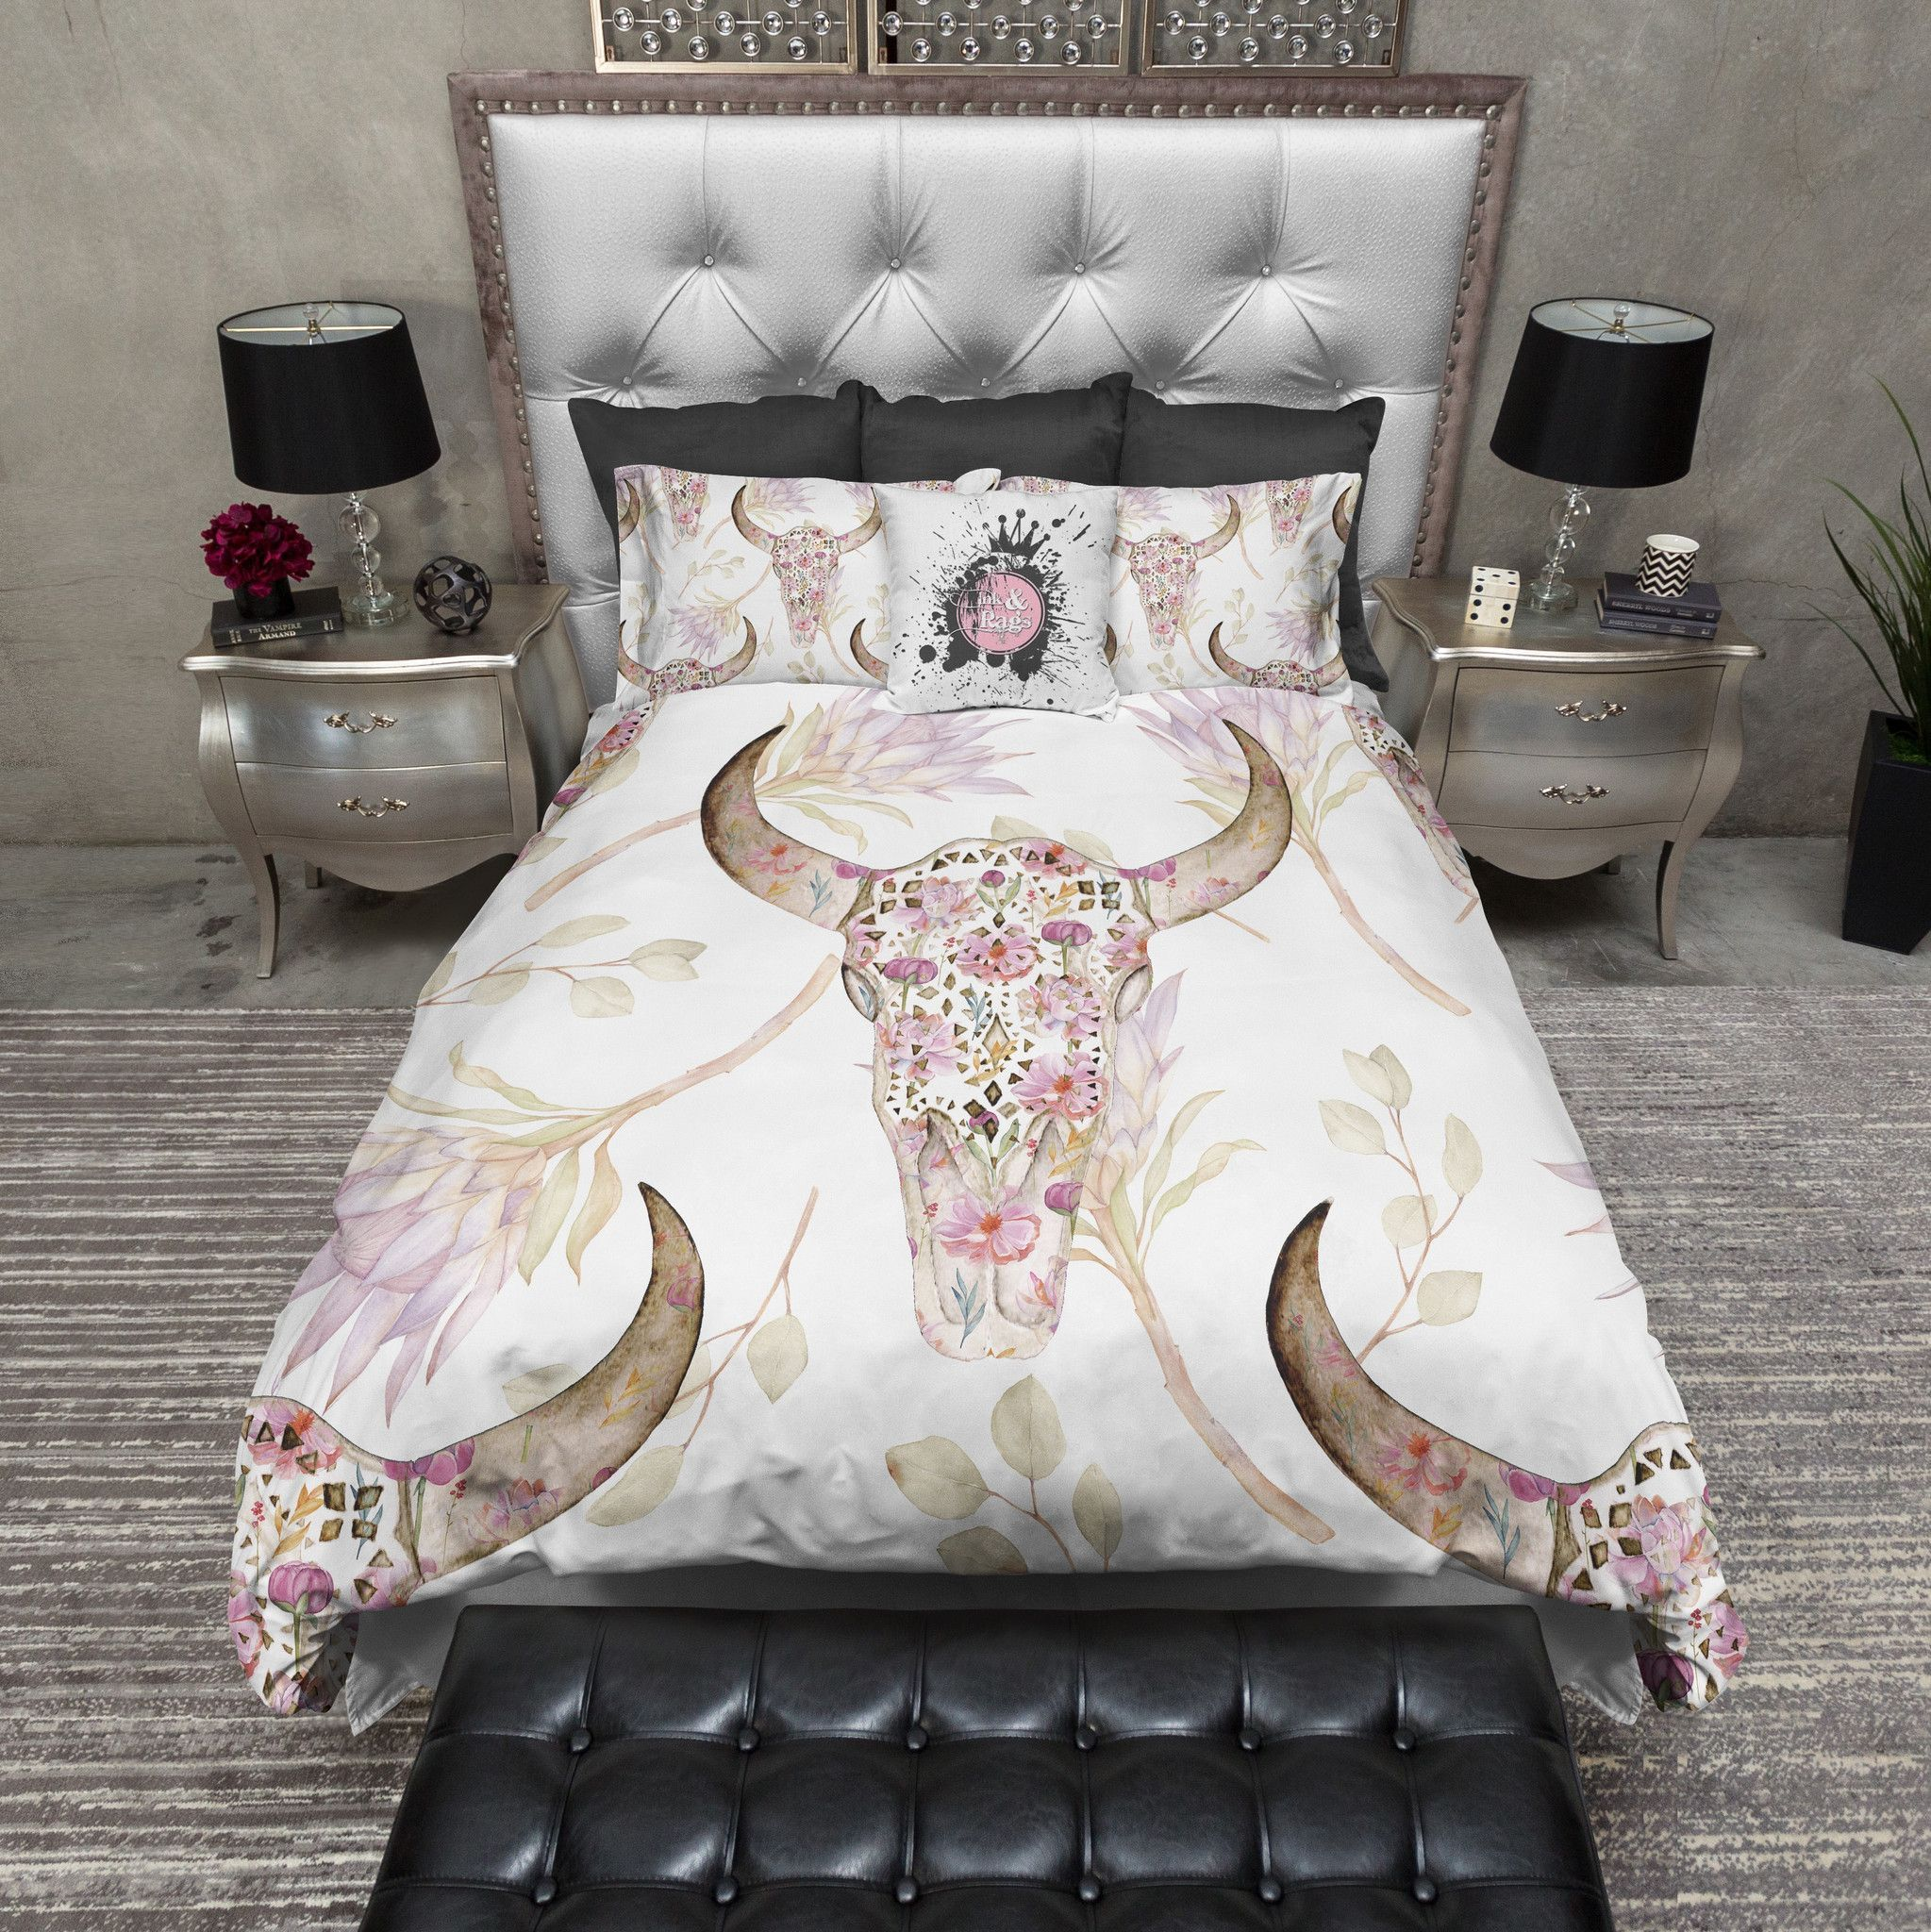 Boho Petite Flower And Bull Skull And Flower Bedding Bed Linens